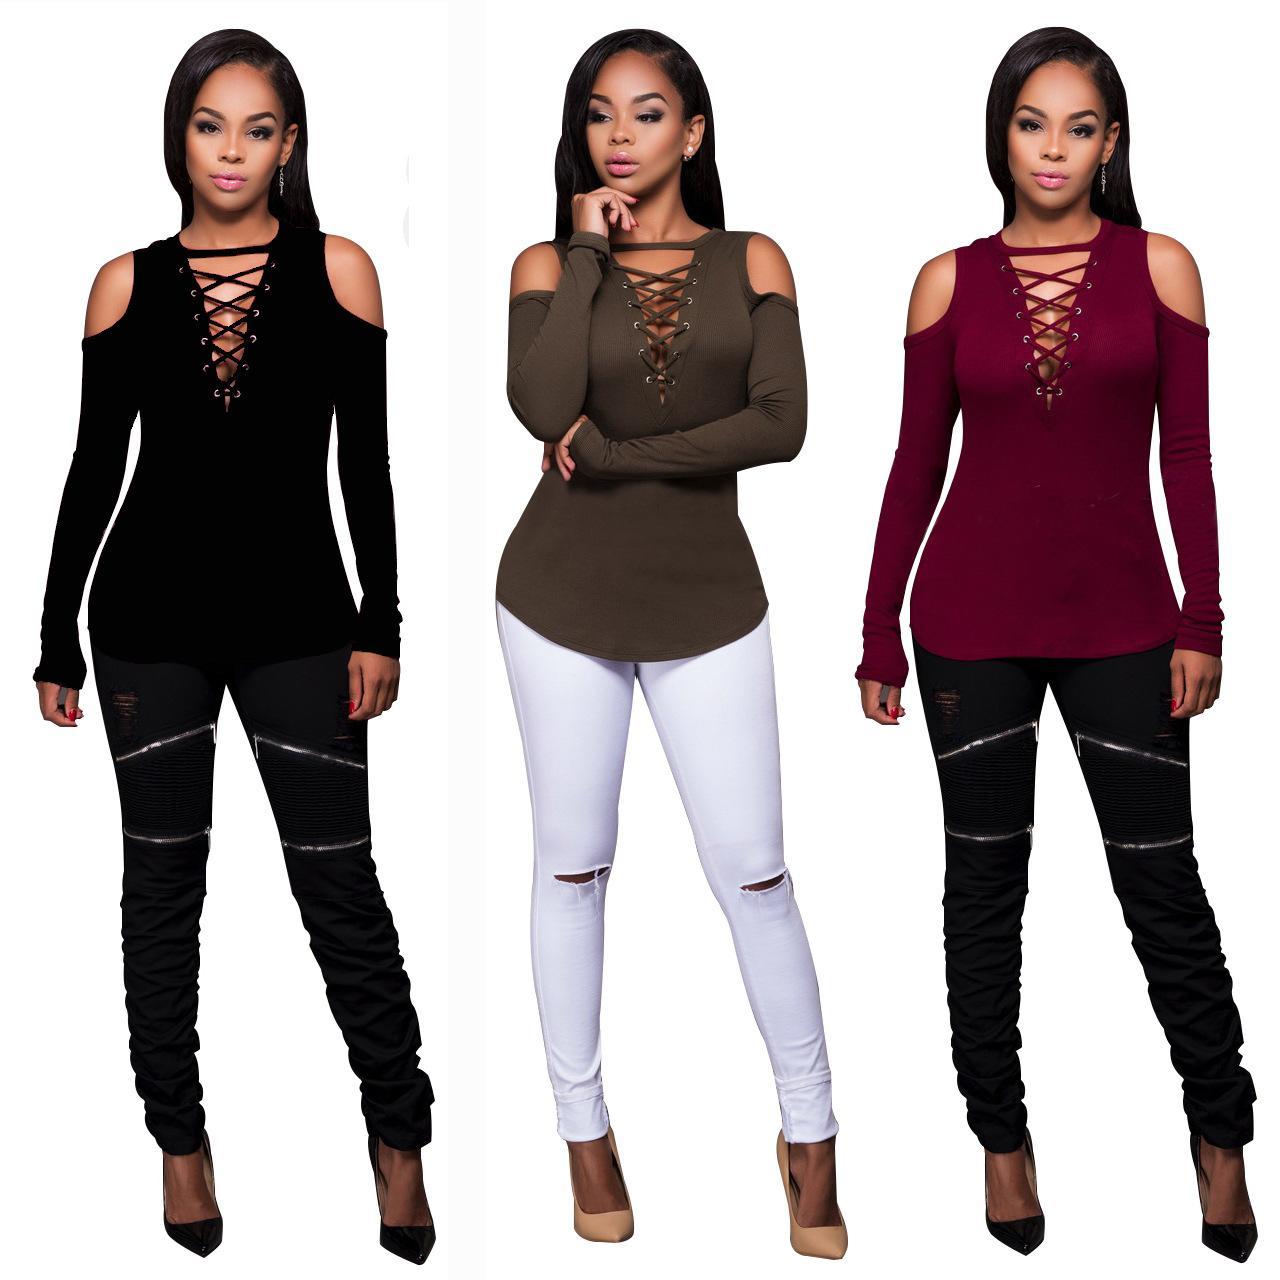 e57bcf9fa65 Wholesale 2017 New Trendy Womens Tops Long Sleeve Deep V Neck Cross Lace Up Slim  Sexy Women T Shirt Hollow Out Tee Top Poleras De Mujer Cool Tshirts Retro T  ...